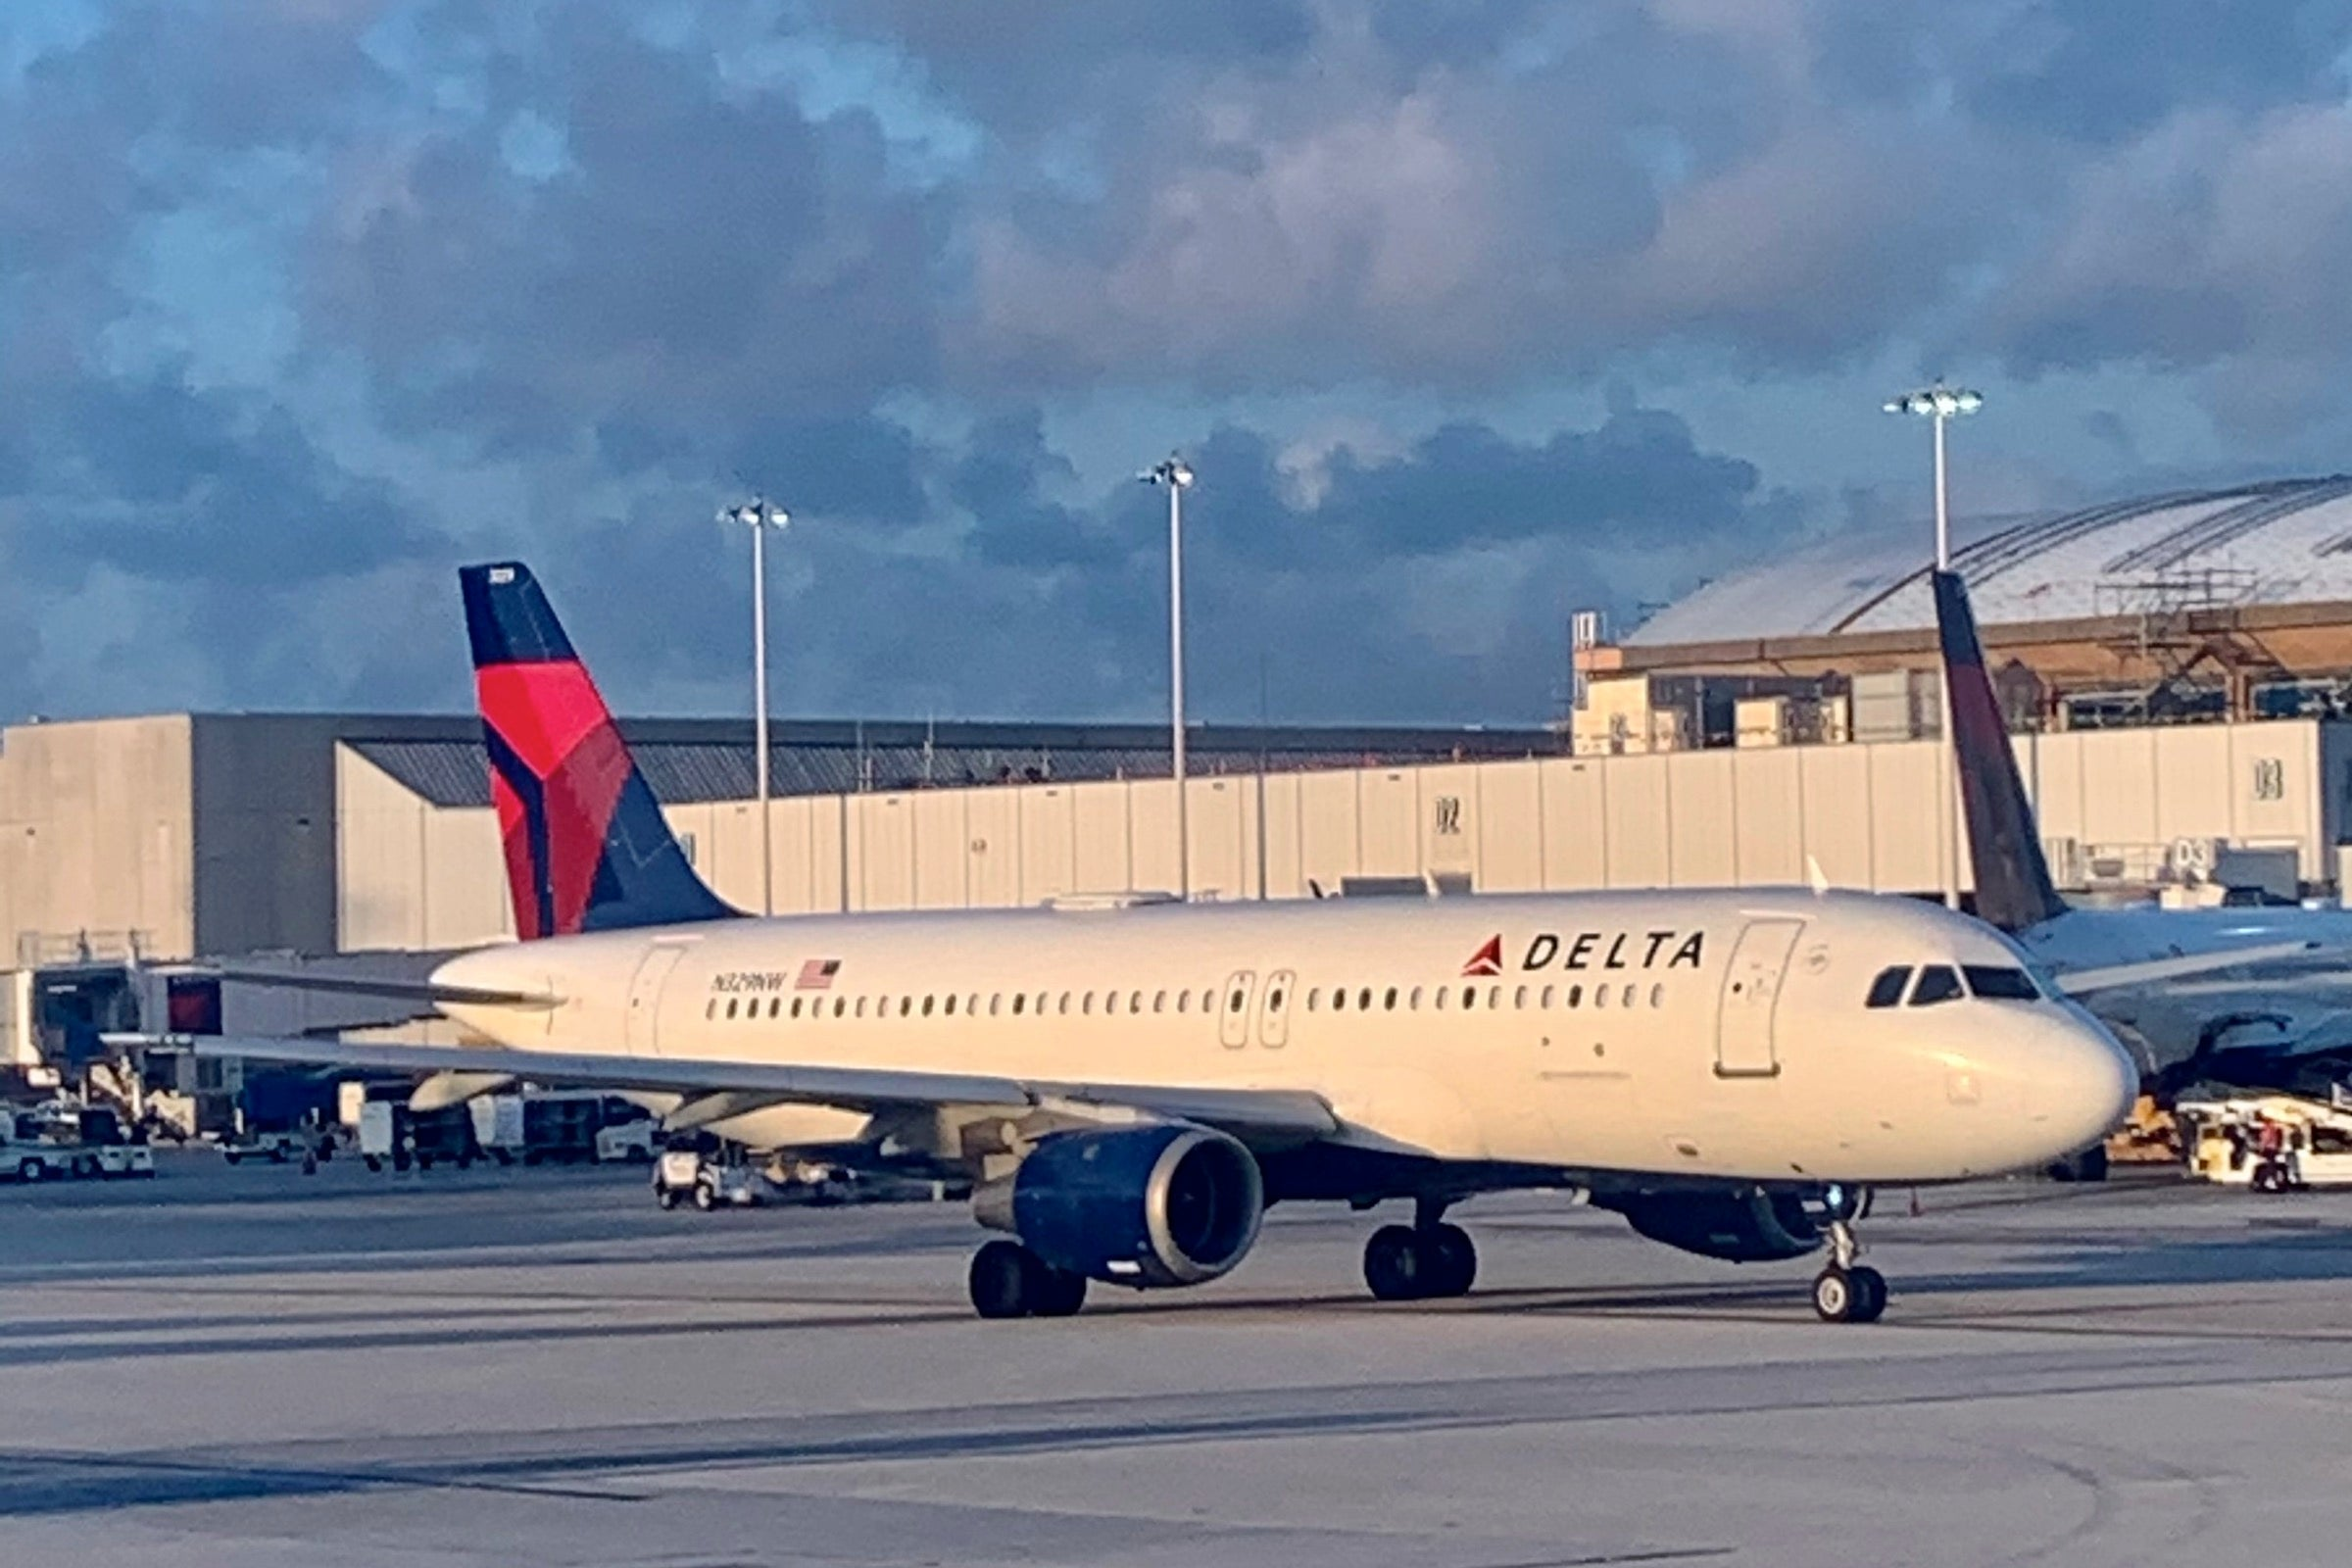 Delta is filling middle seats to combat Easter Weekend flight cancellations - The Points Guy